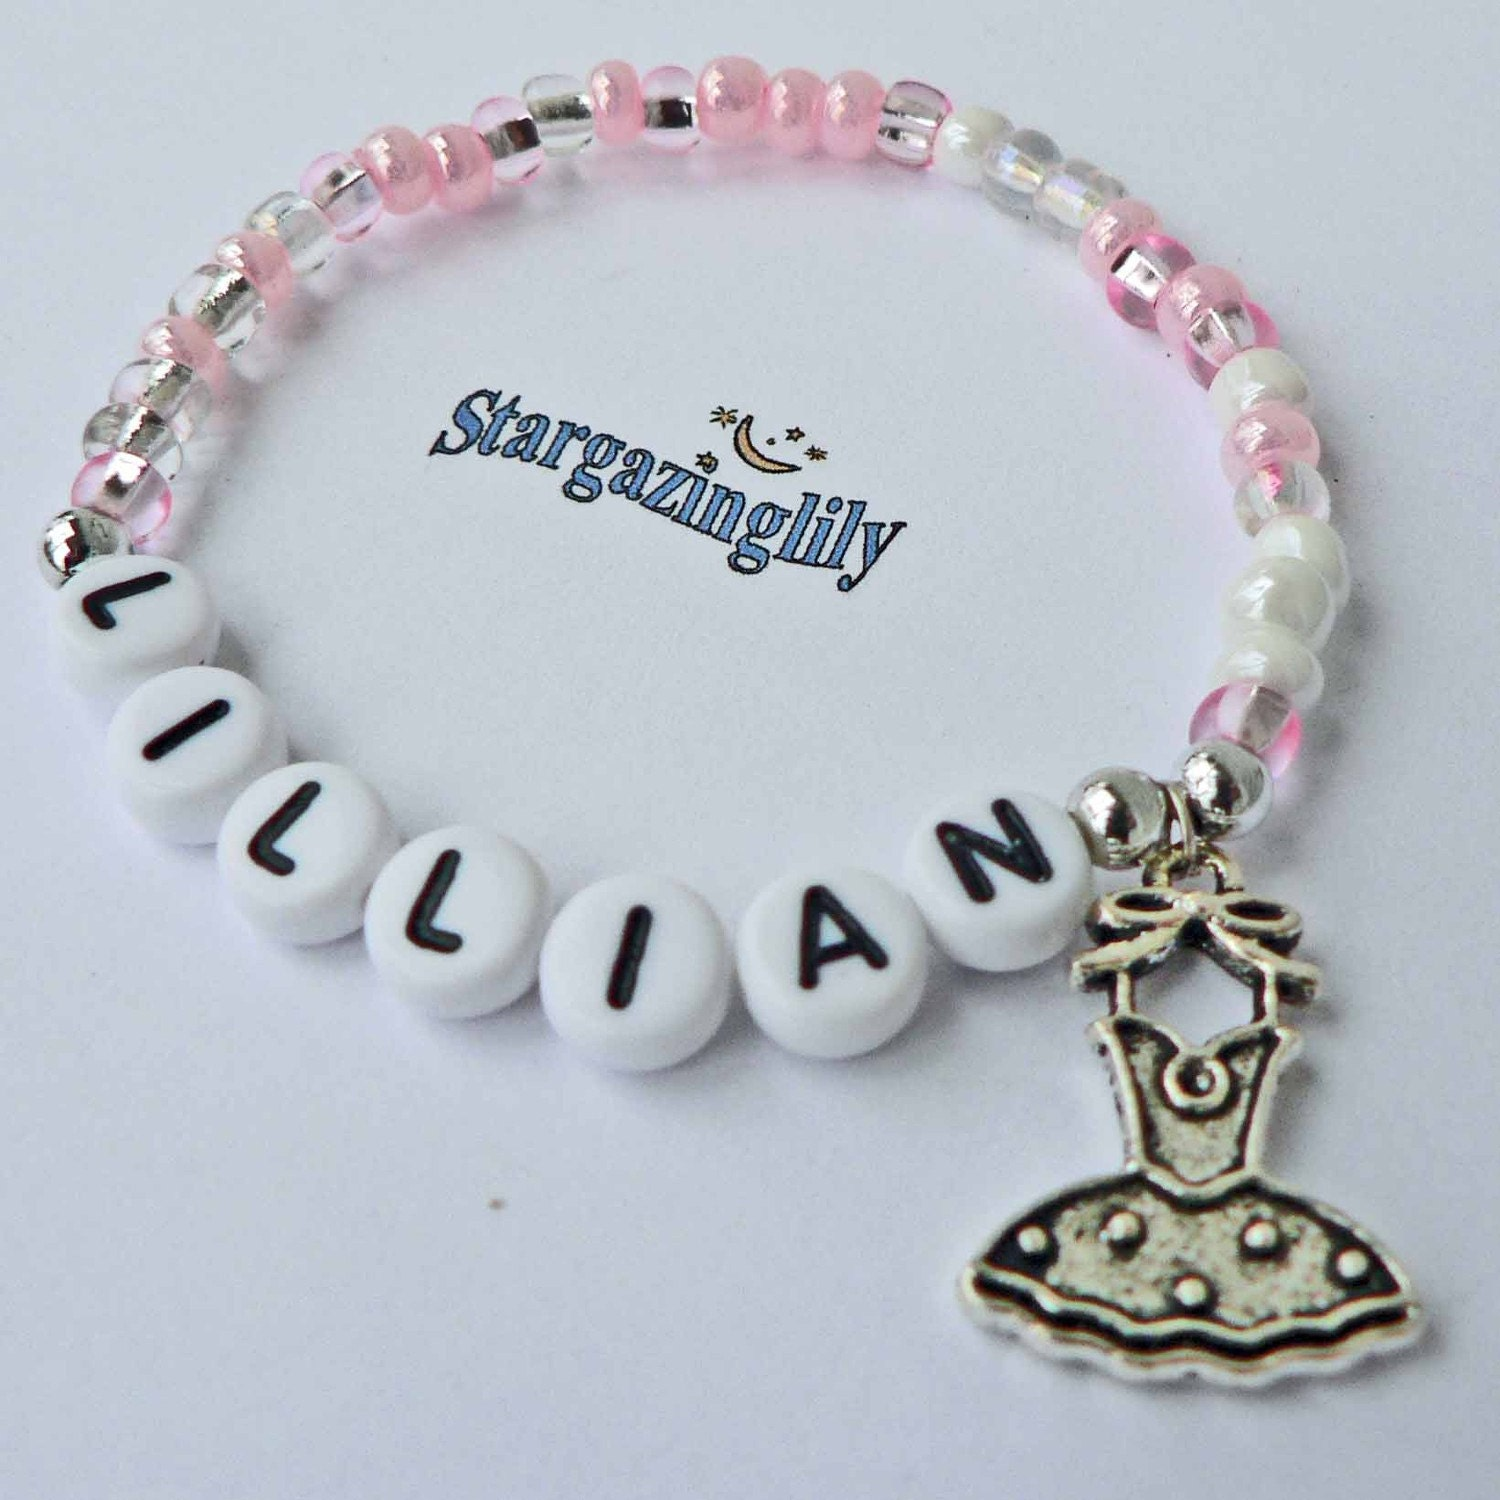 Personalized Bracelet Charms: Children's Jewelry Name Bracelet PERSONALIZED By